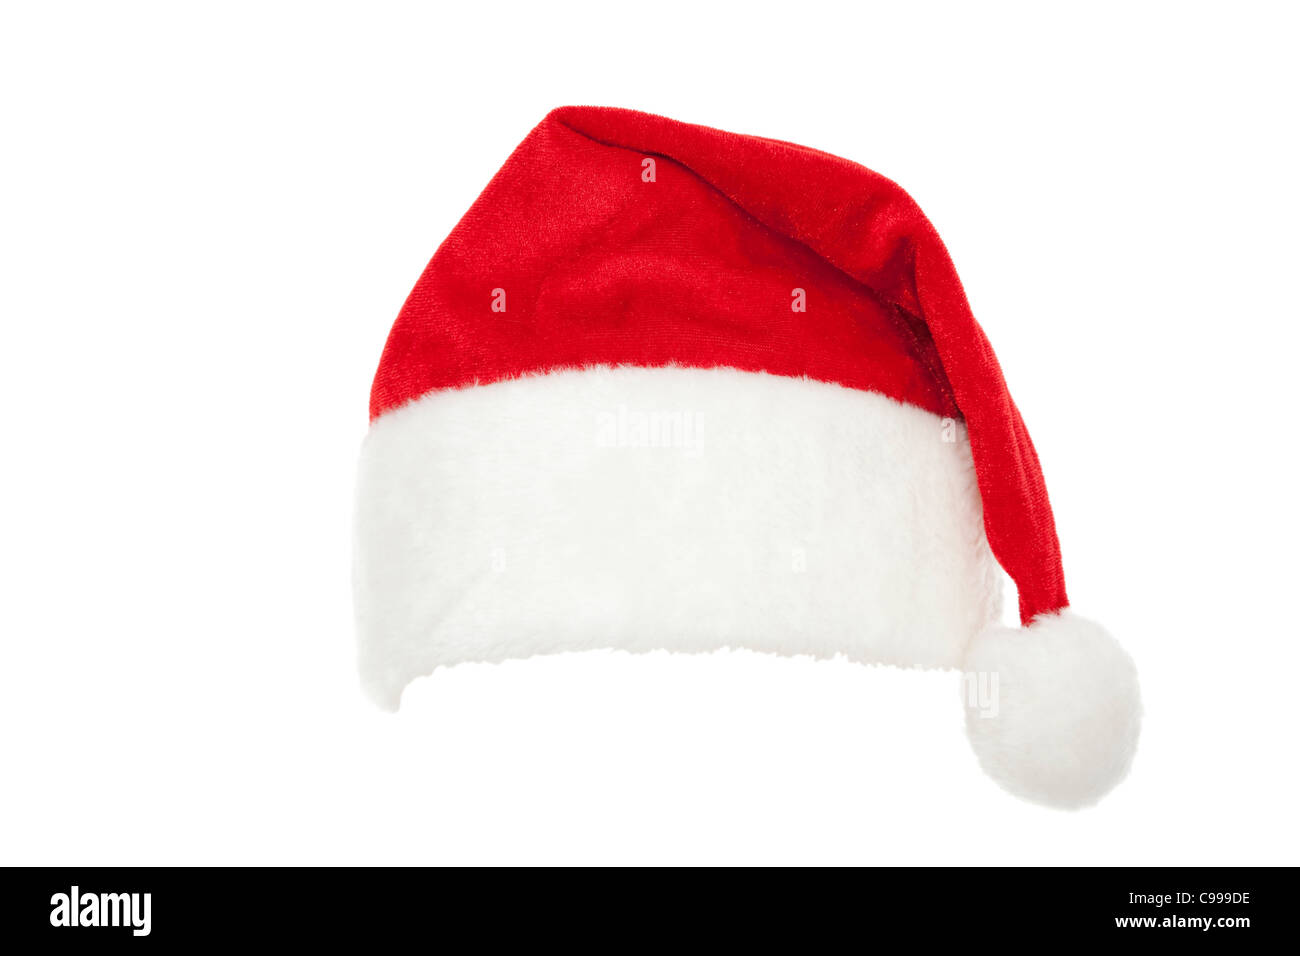 red cap Santa Claus on white background - Stock Image